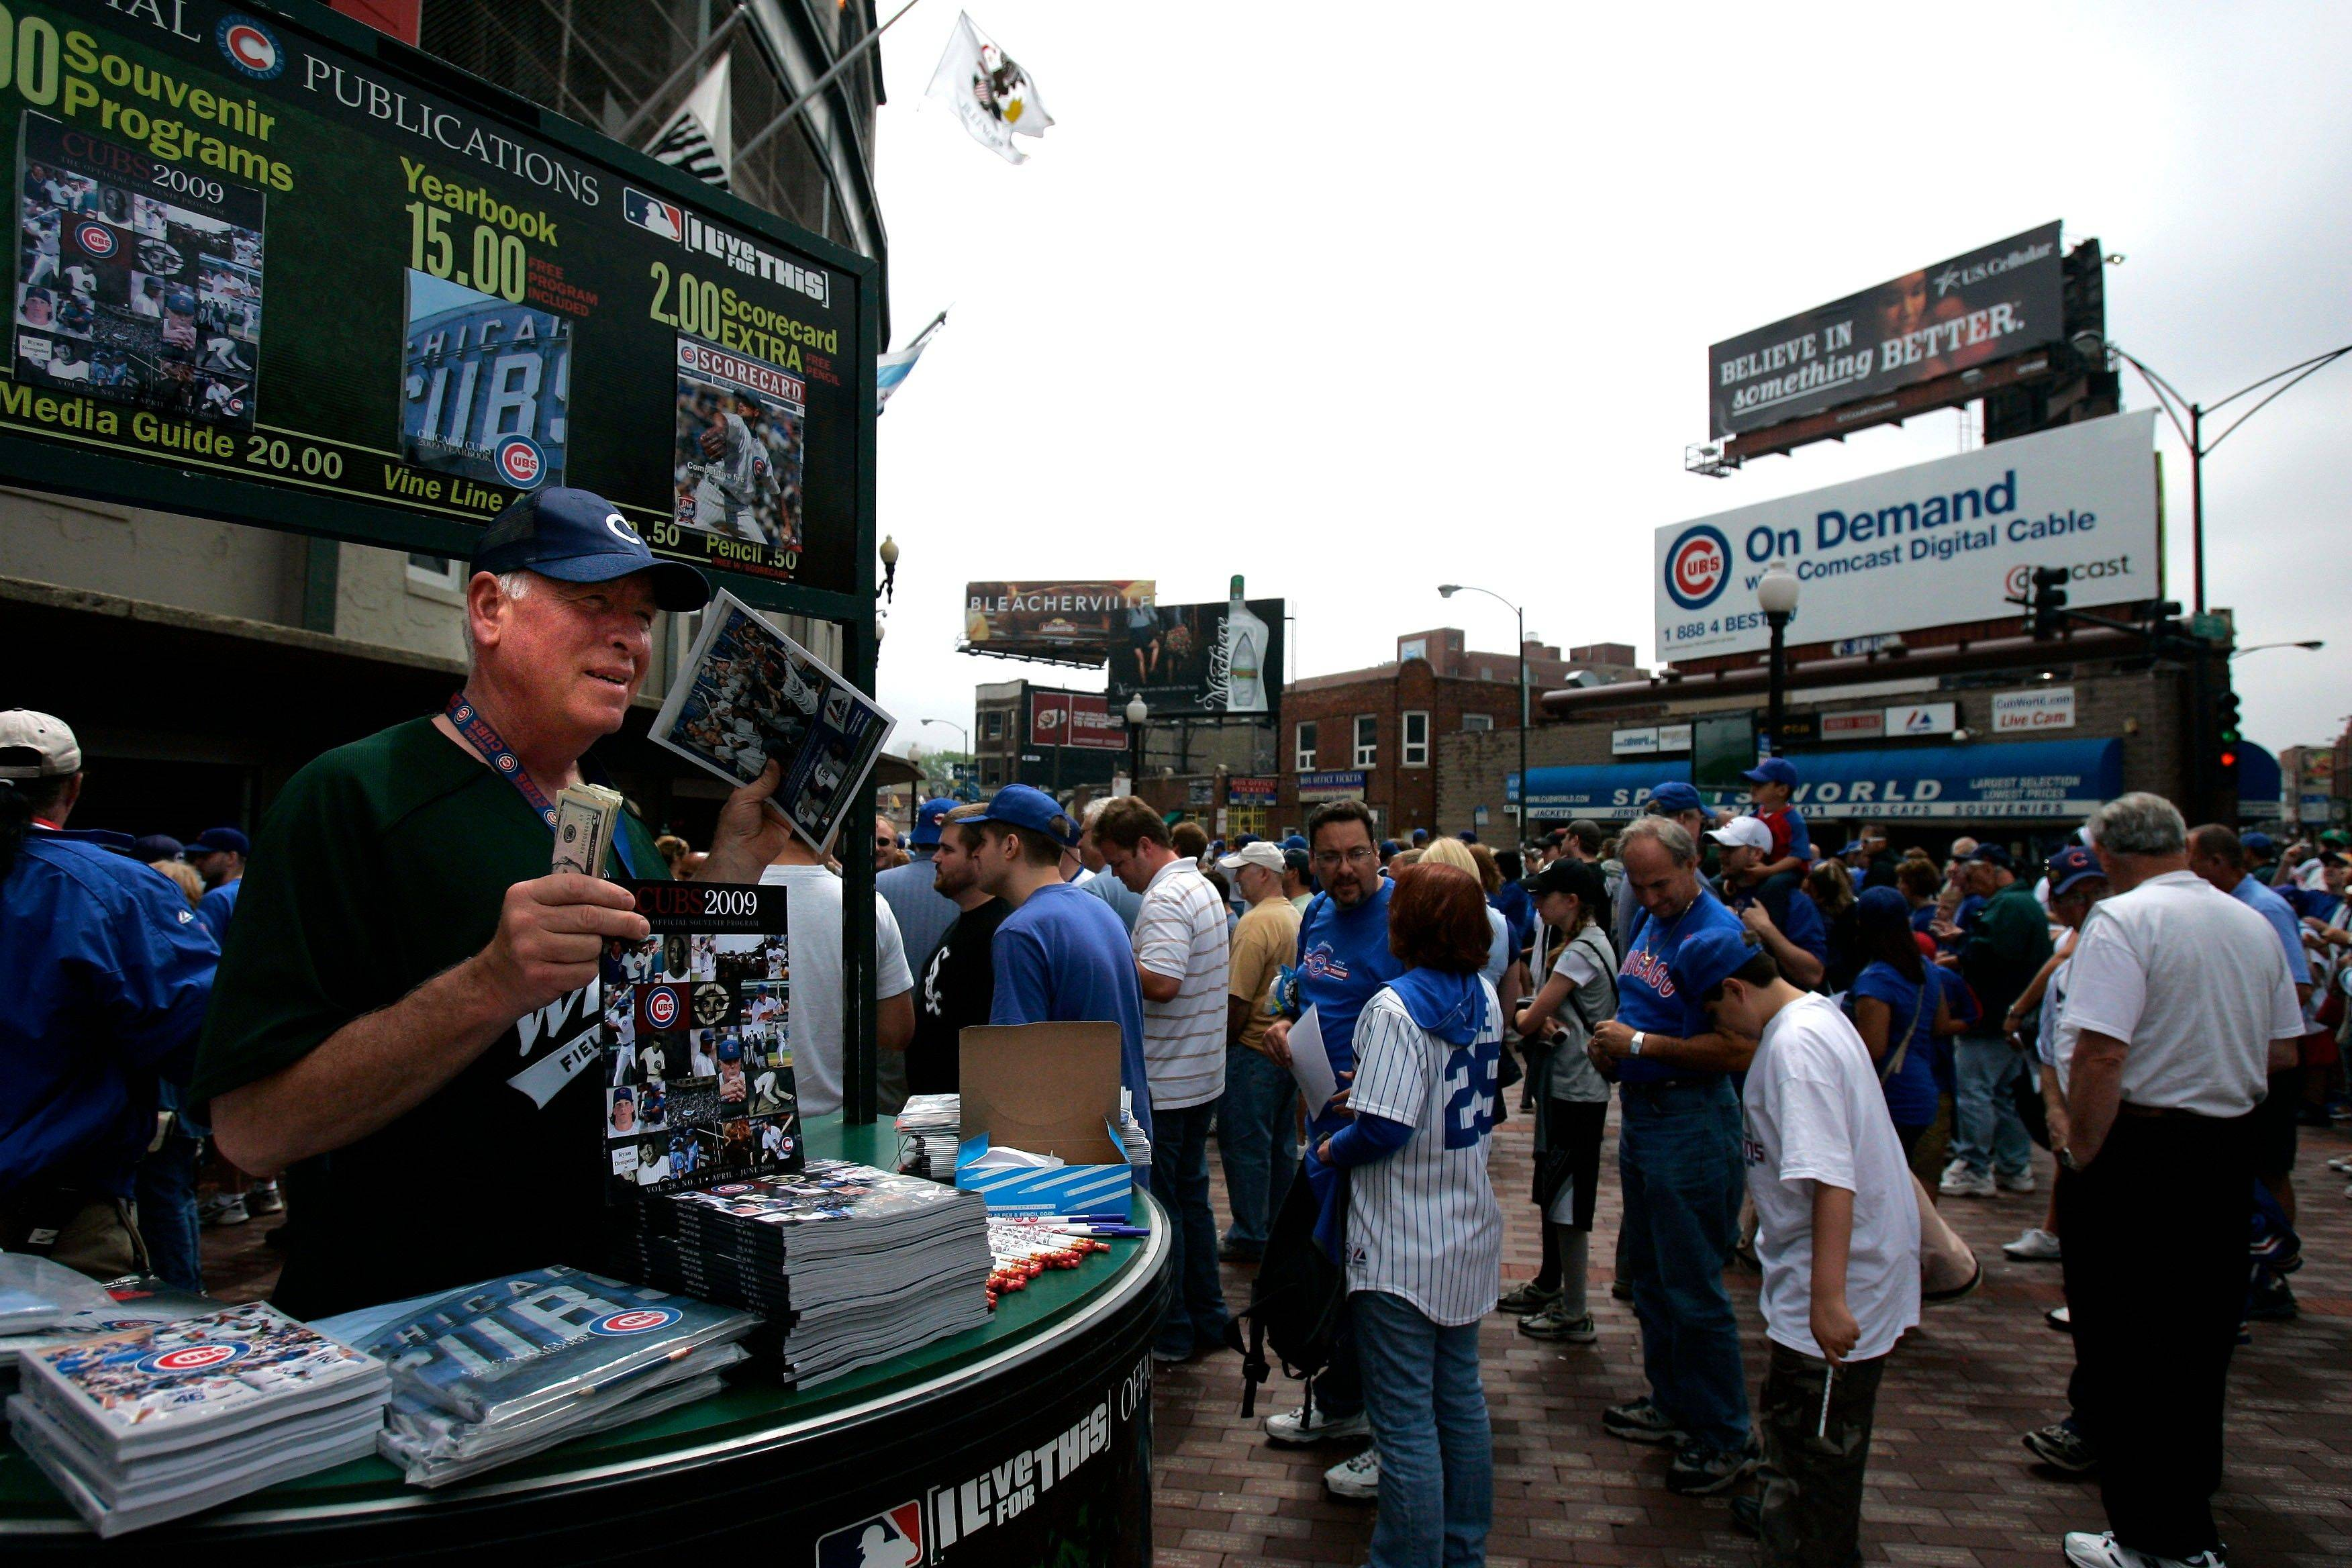 Dave Klemp sells programs before the start of the game between the Cubs and White Sox on June 17, 2009, at Wrigley Field. Add programs, baseball caps, food and drinks, and parking to the ticket costs, and you're laying out some serious cash.